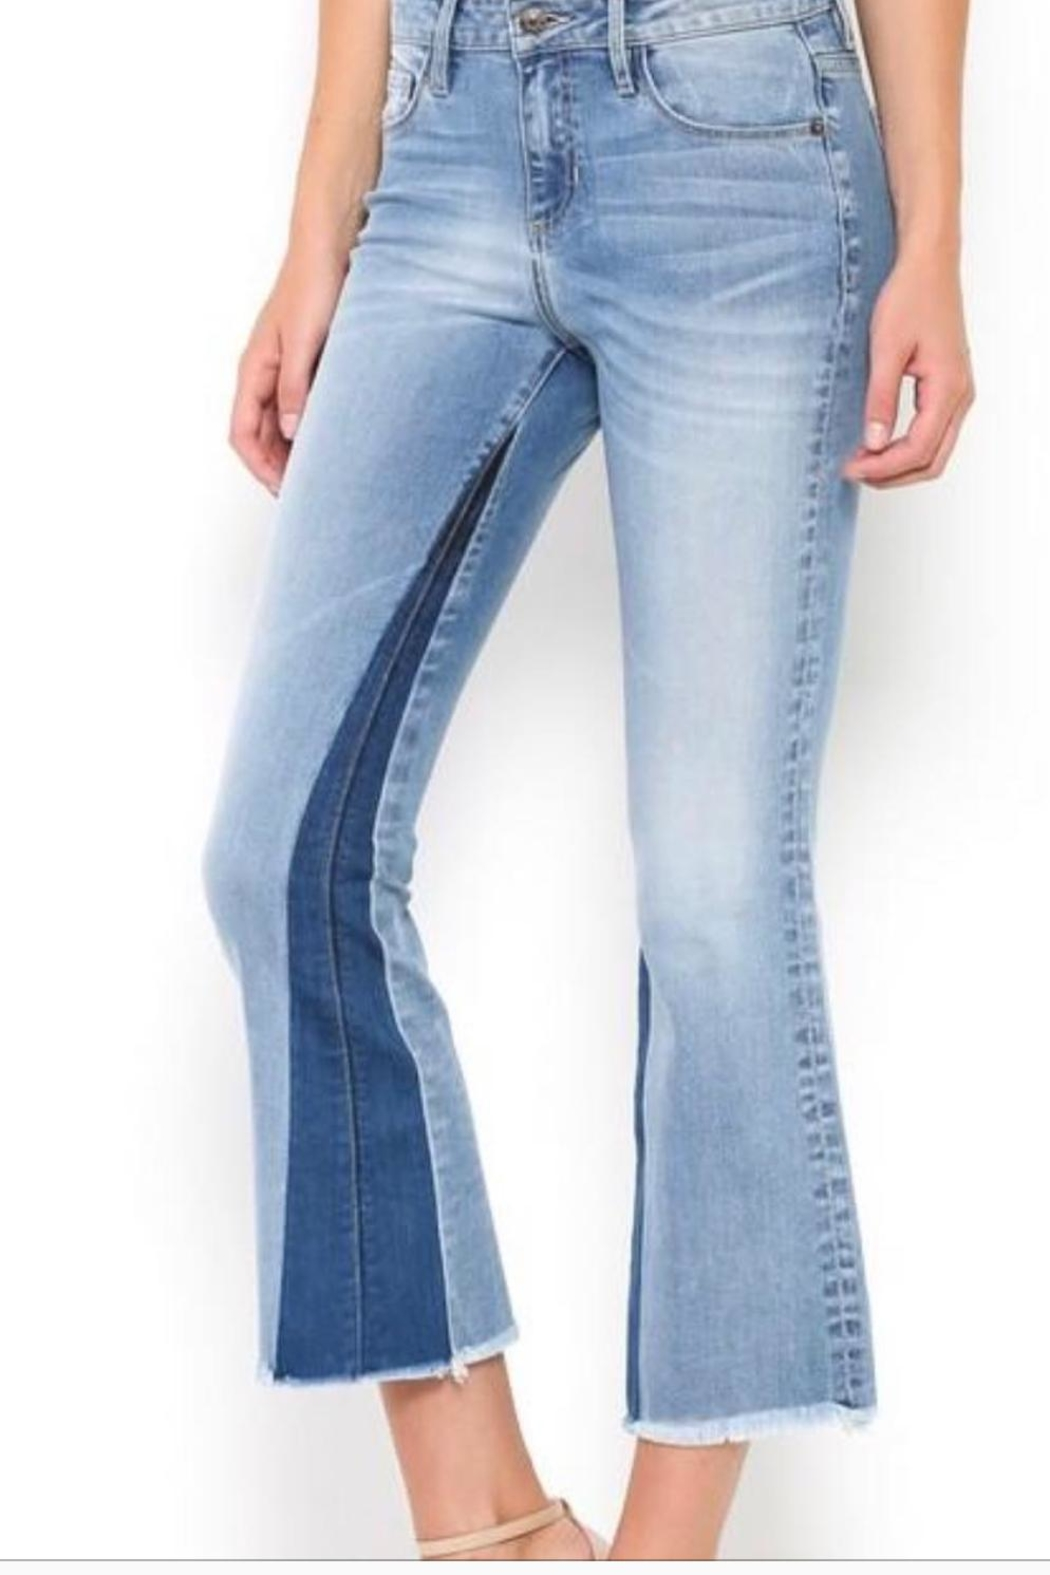 Hidden Jeans Cropped Fit/flare Jeans - Main Image